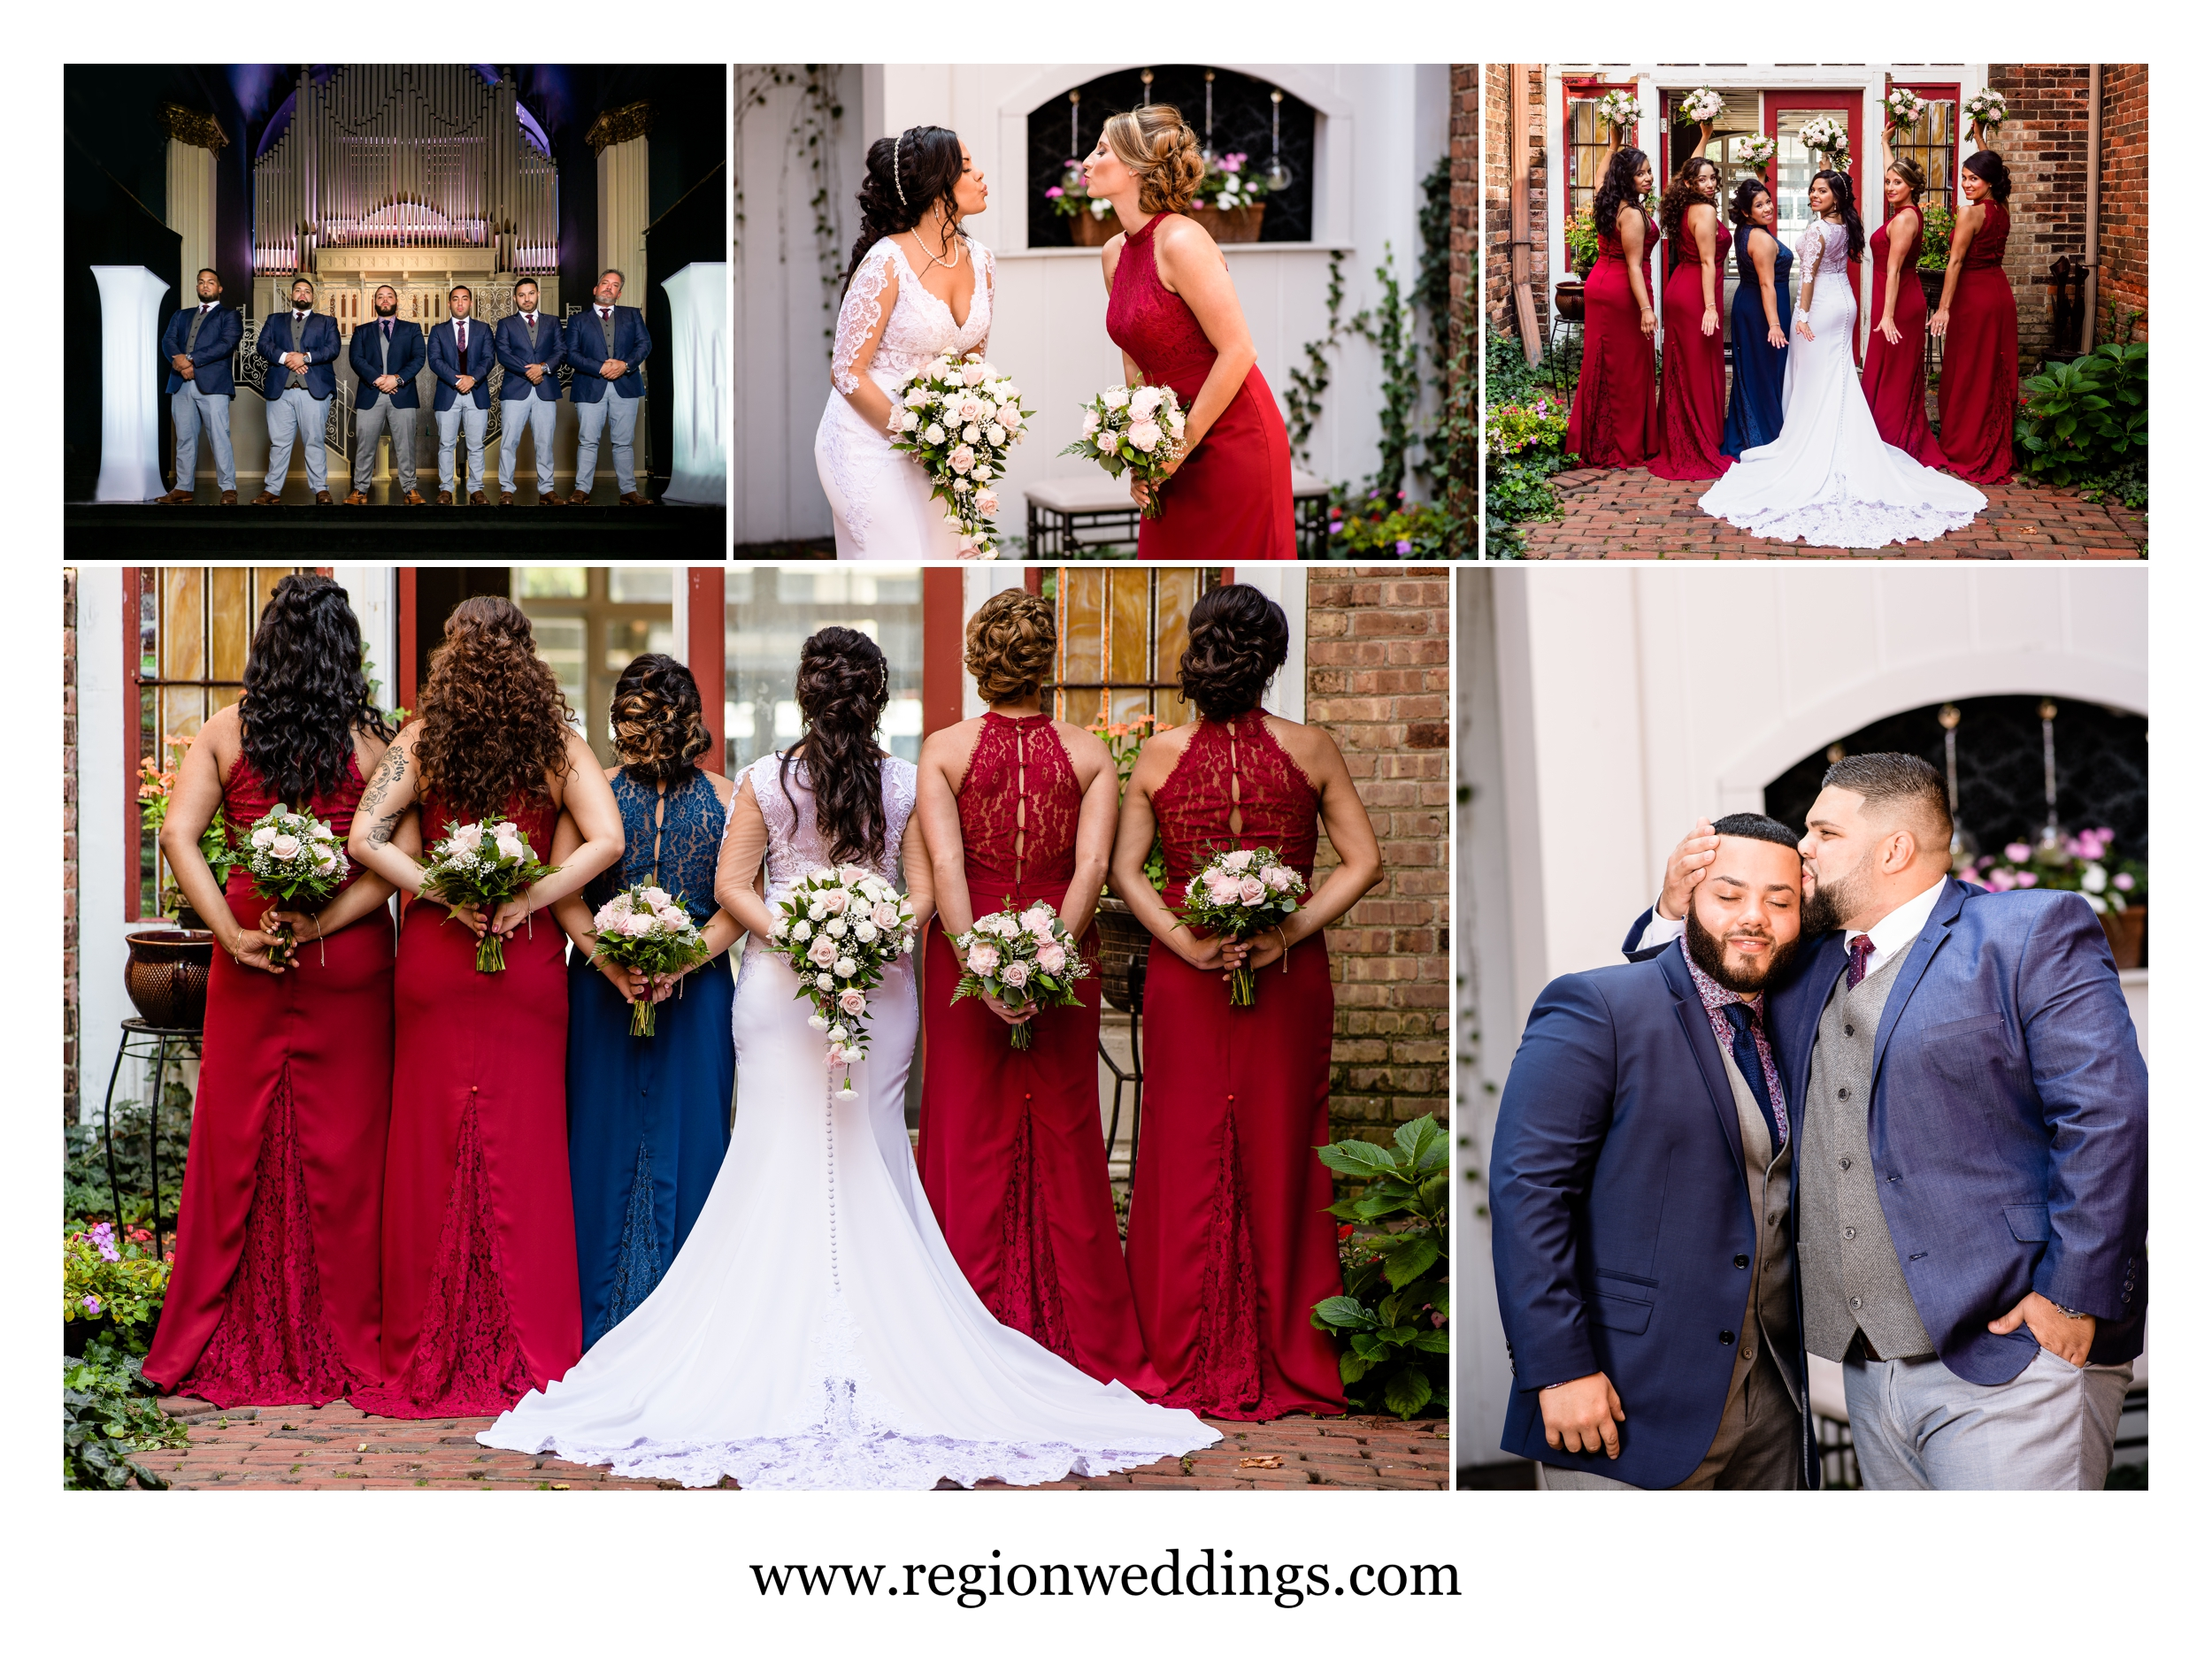 Wedding party photos in the courtyard at Uptown Center.